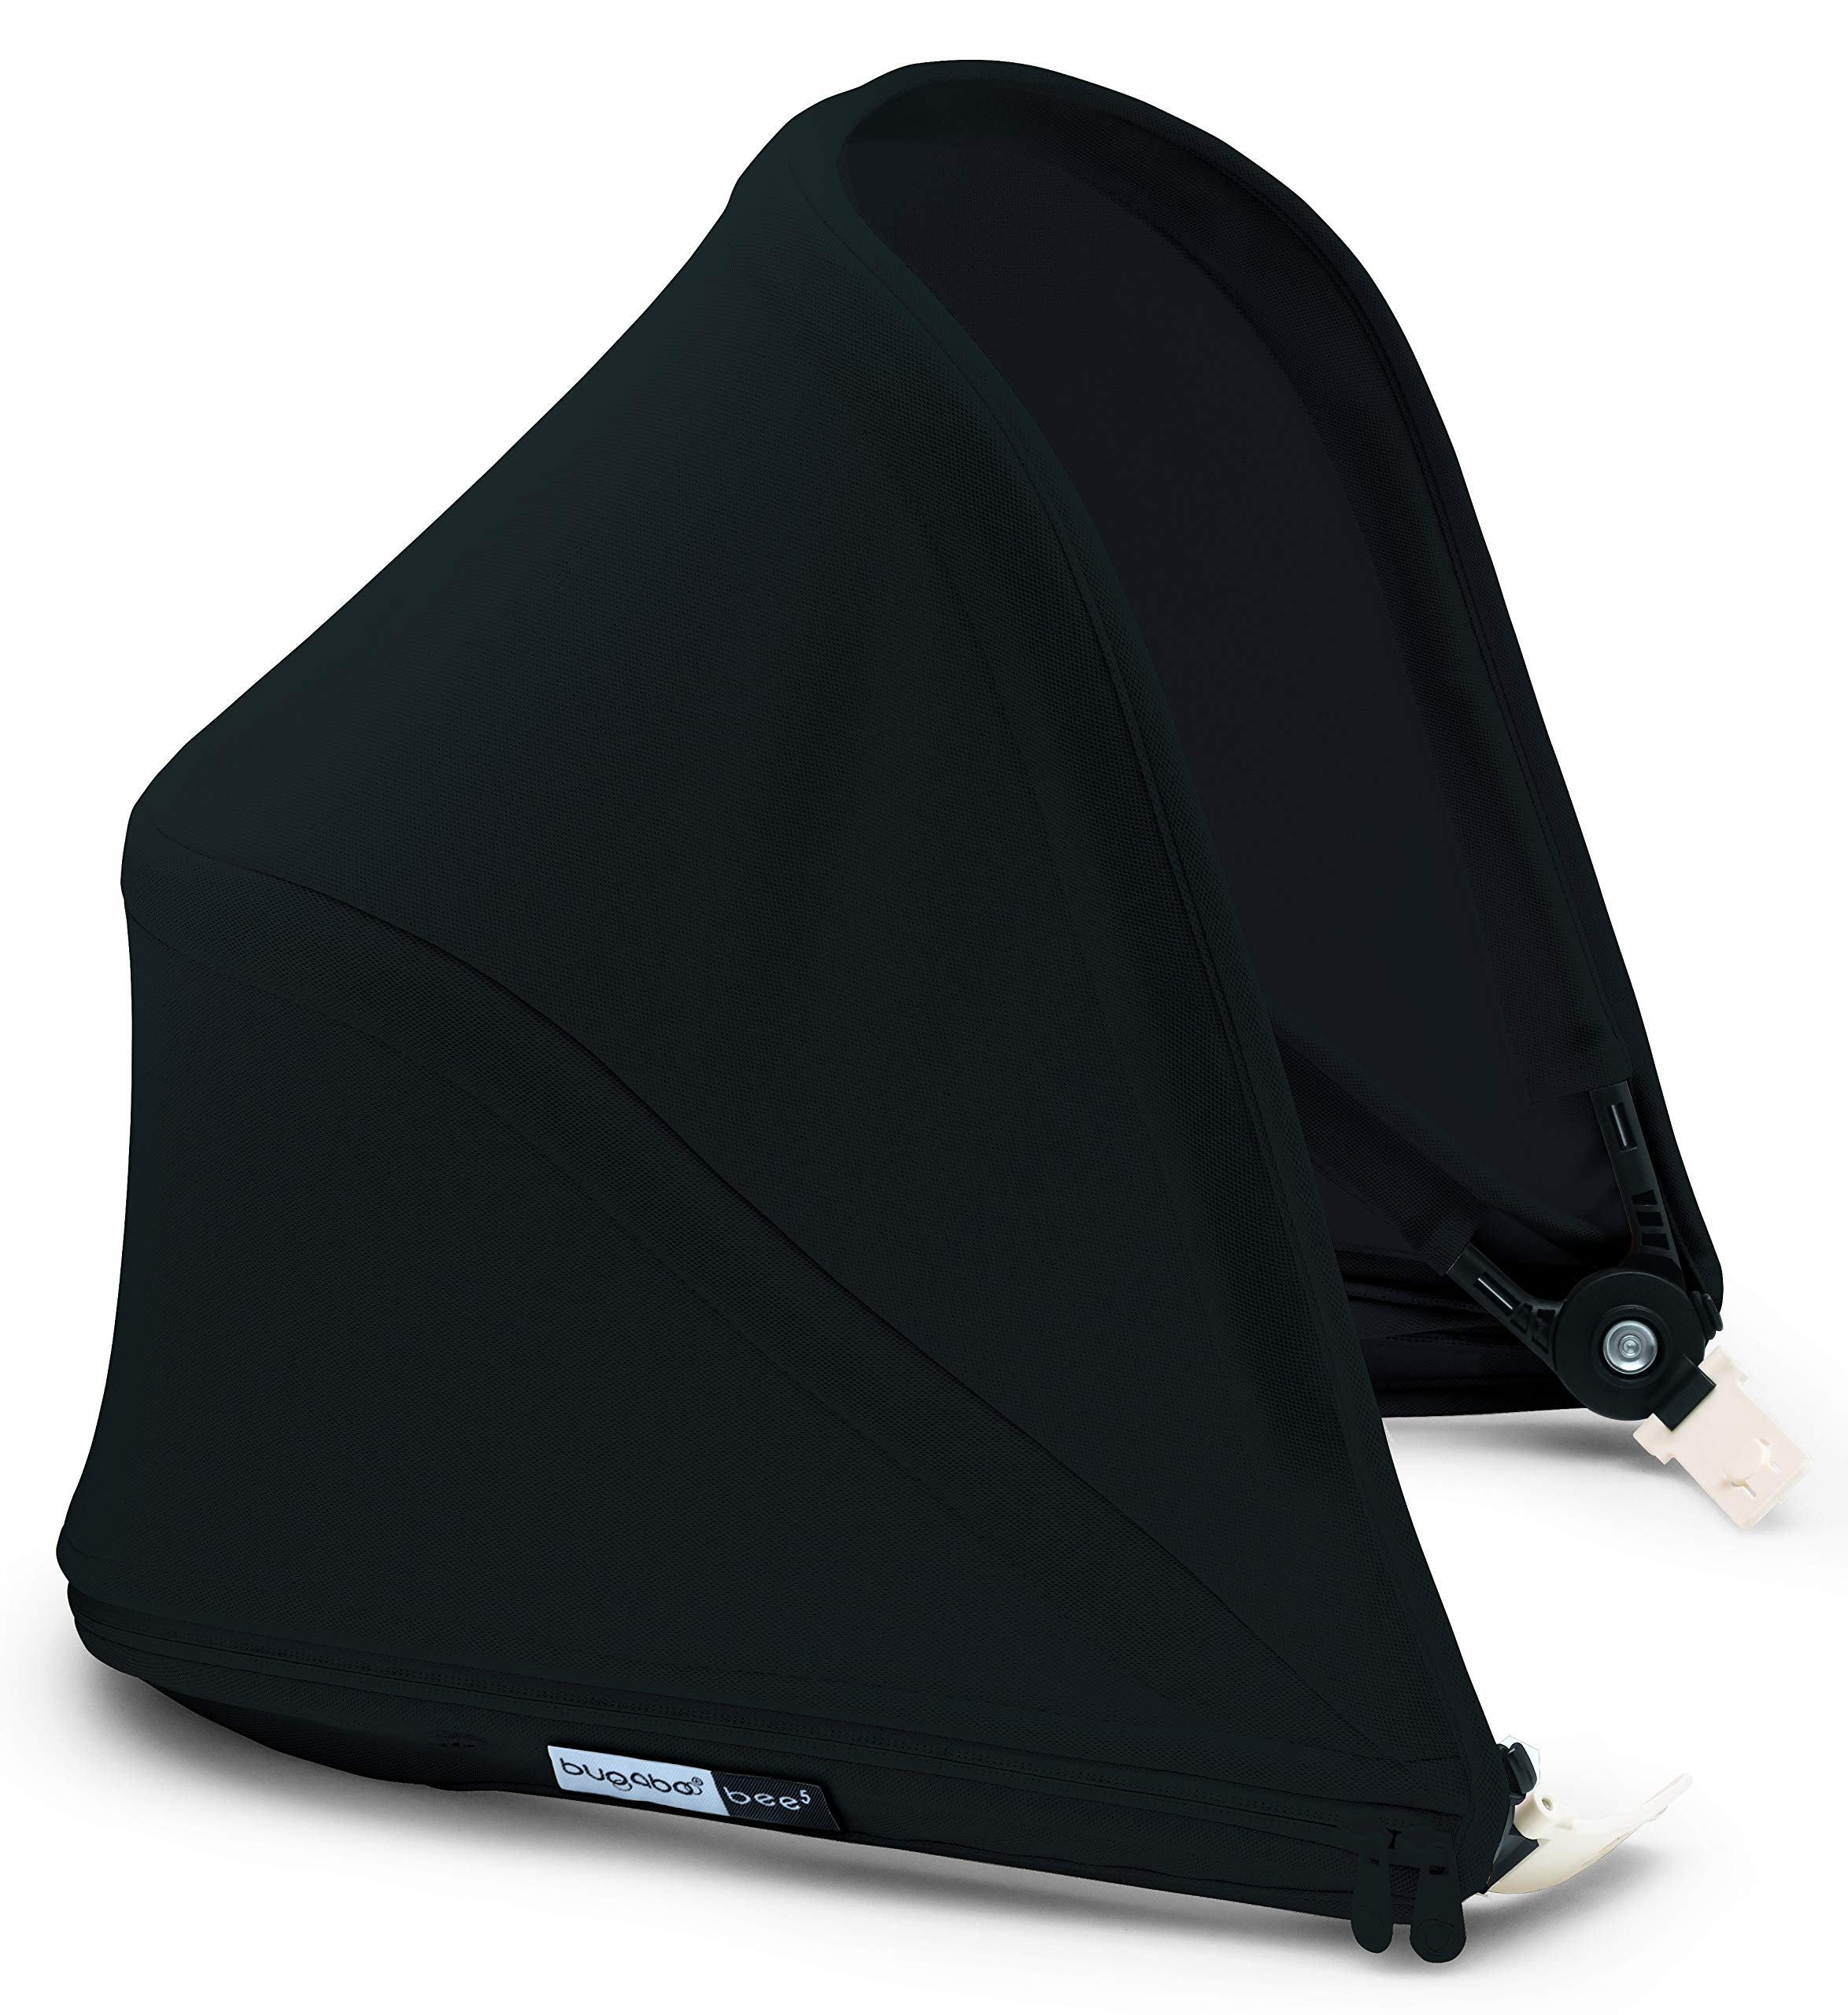 Bugaboo Bee5 Sun Canopy, Black - Extendable Sun Shade for Full Weather Protection, Machine